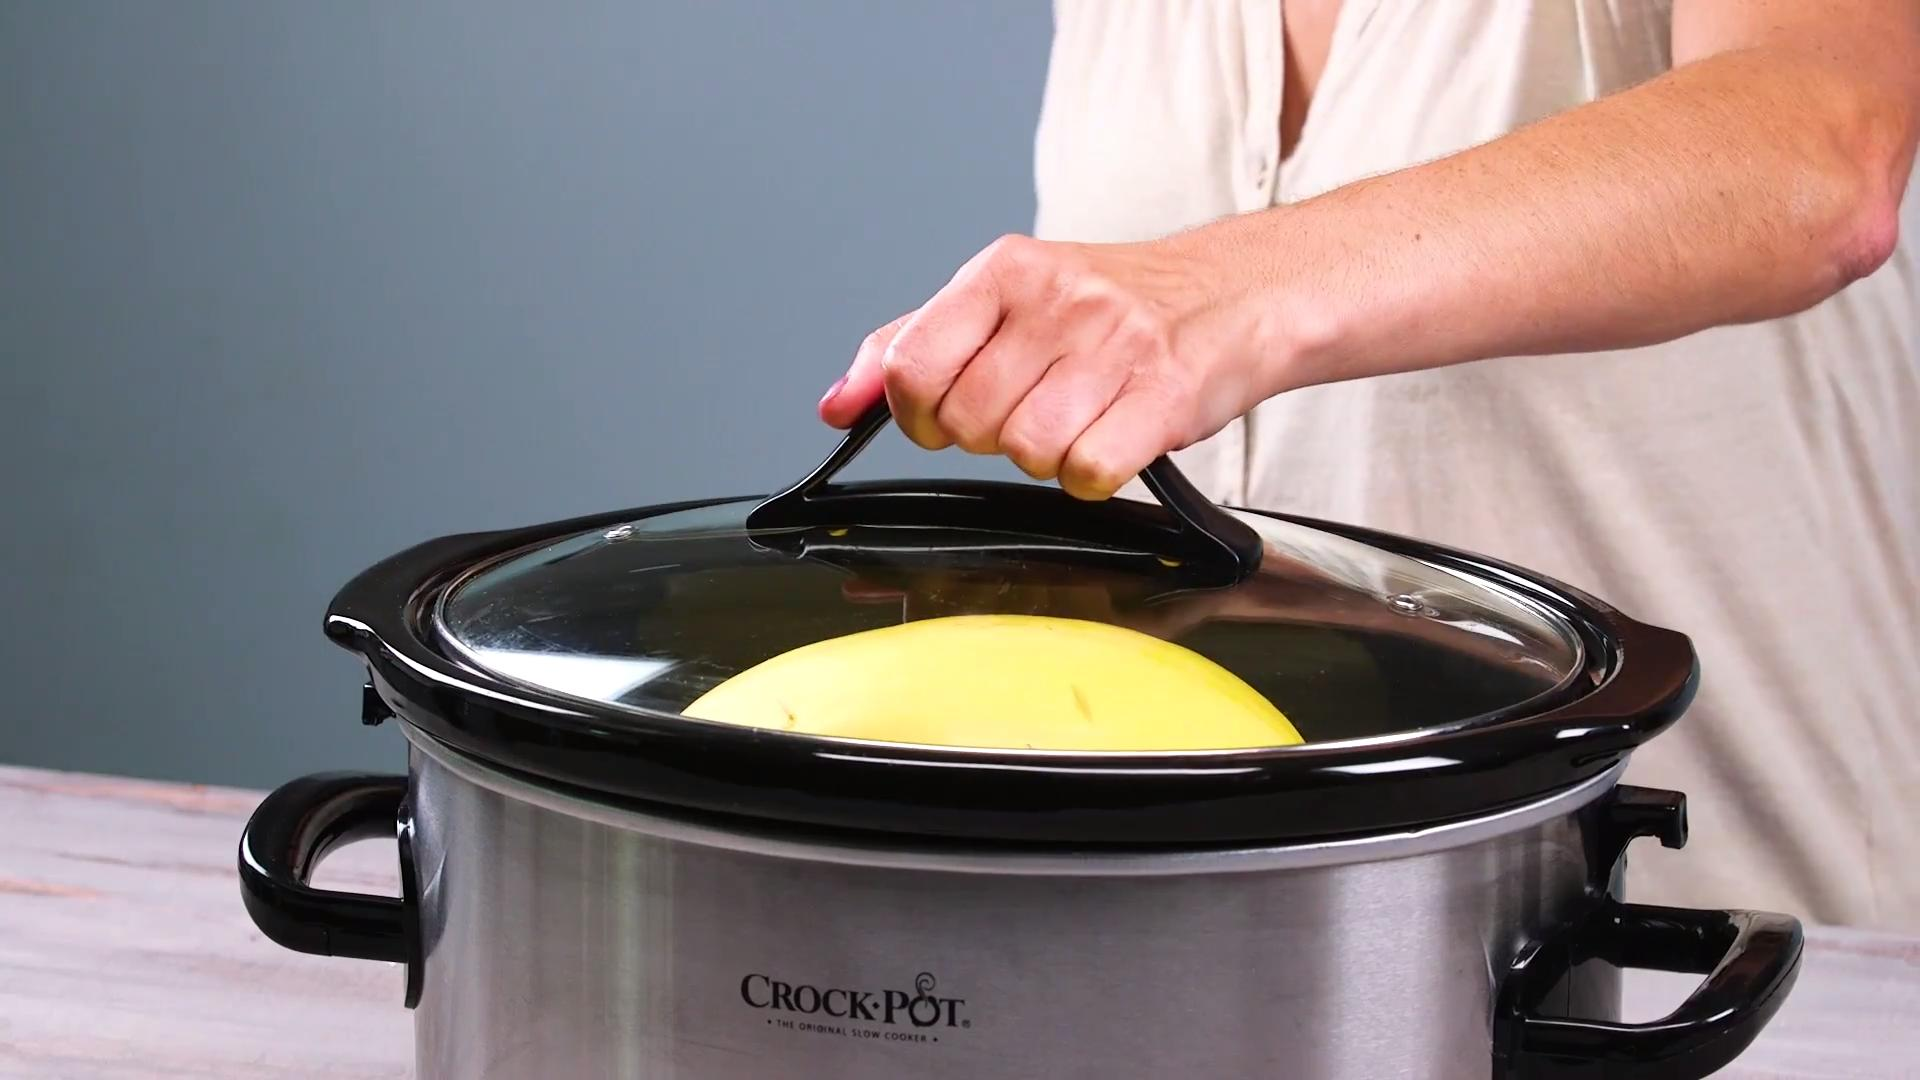 11 Things You Didn't Know Your Slow Cooker Could Do